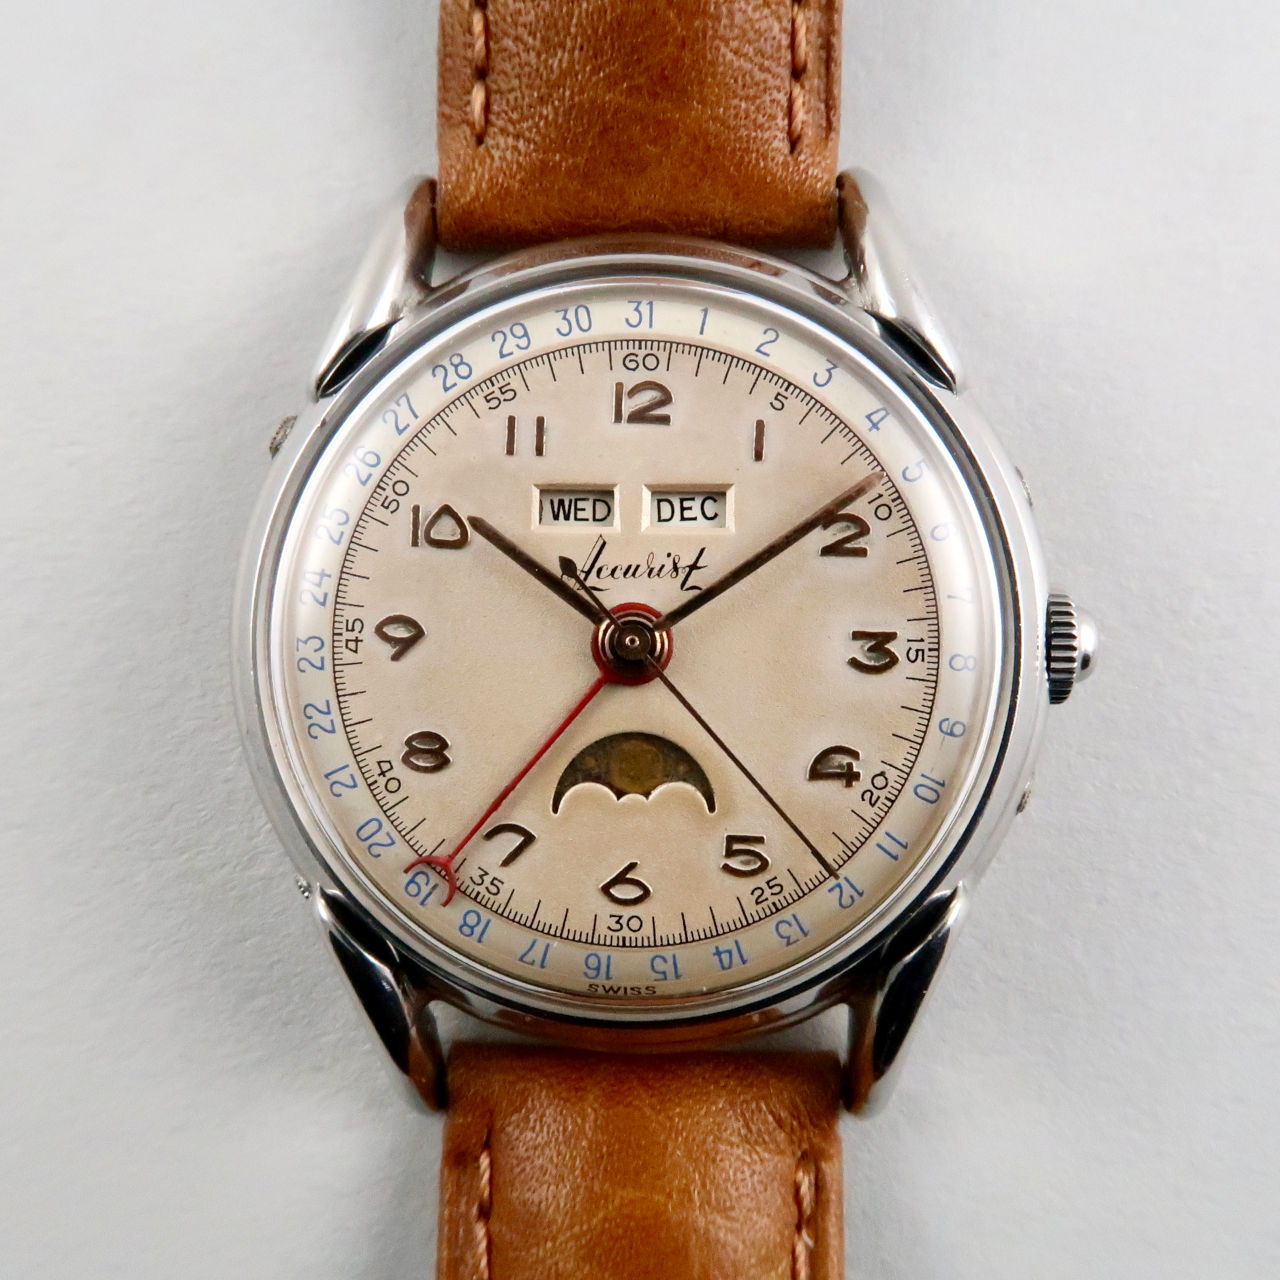 Accurist vintage wristwatch, circa 1950